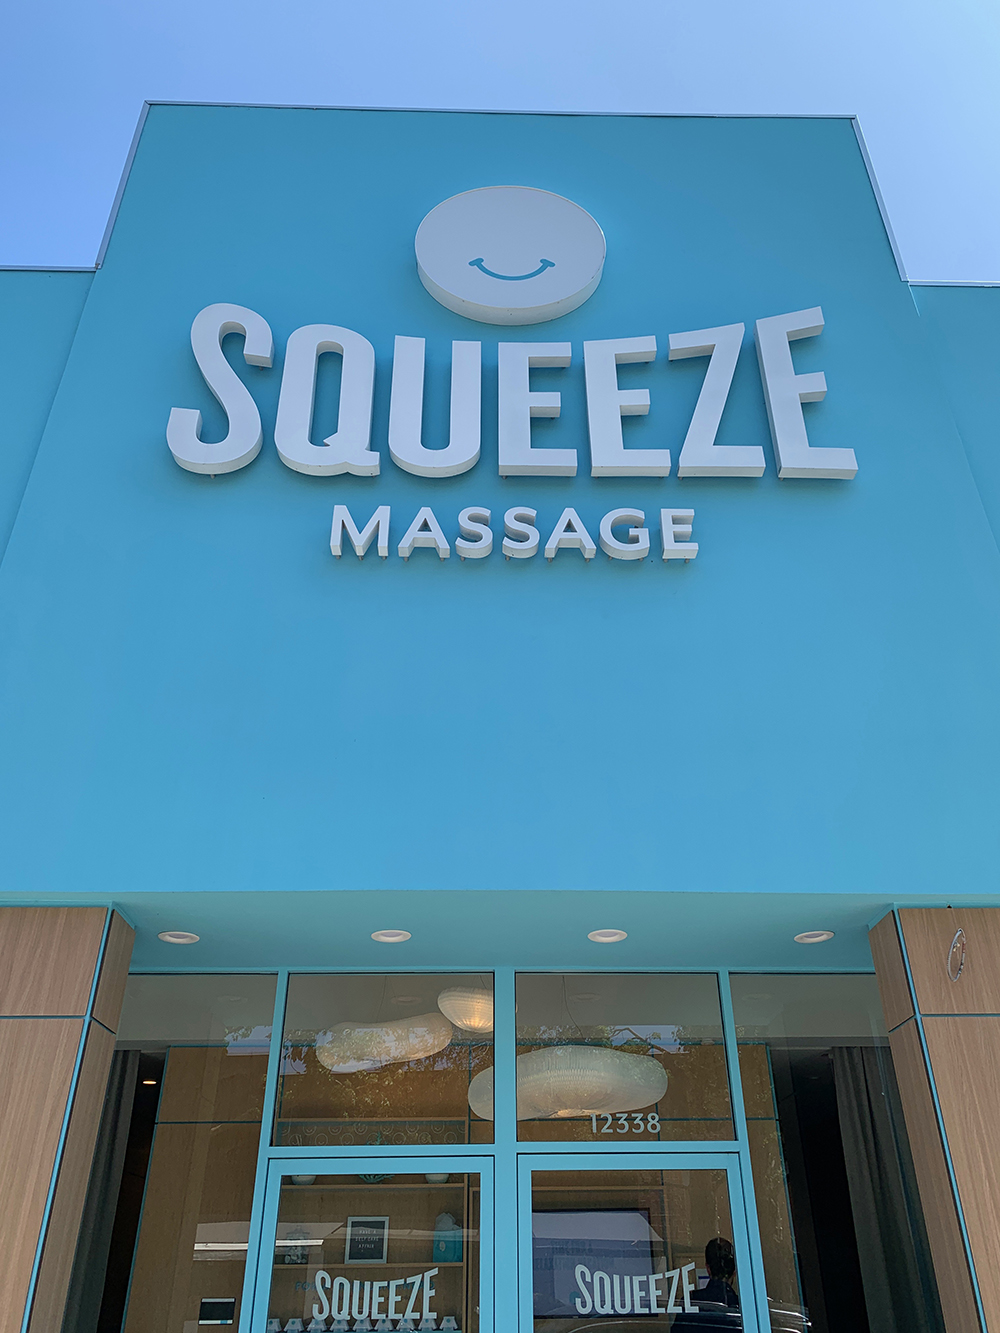 The entrance to Squeeze in Studio City, California.